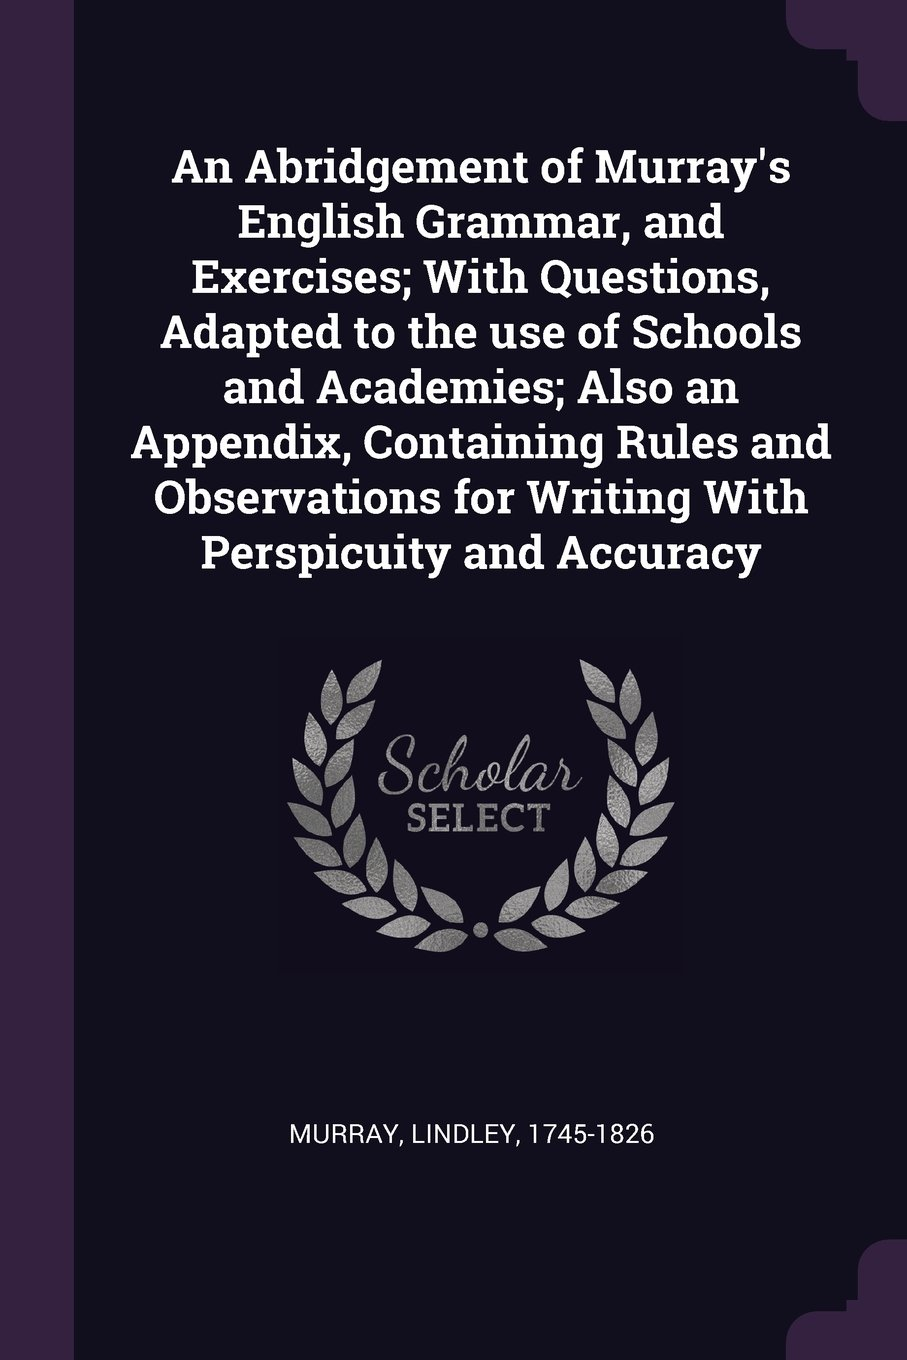 An Abridgement of Murray's English Grammar, and Exercises; With Questions, Adapted to the Use of Schools and Academies; Also an Appendix, Containing ... for Writing with Perspicuity and Accuracy ebook